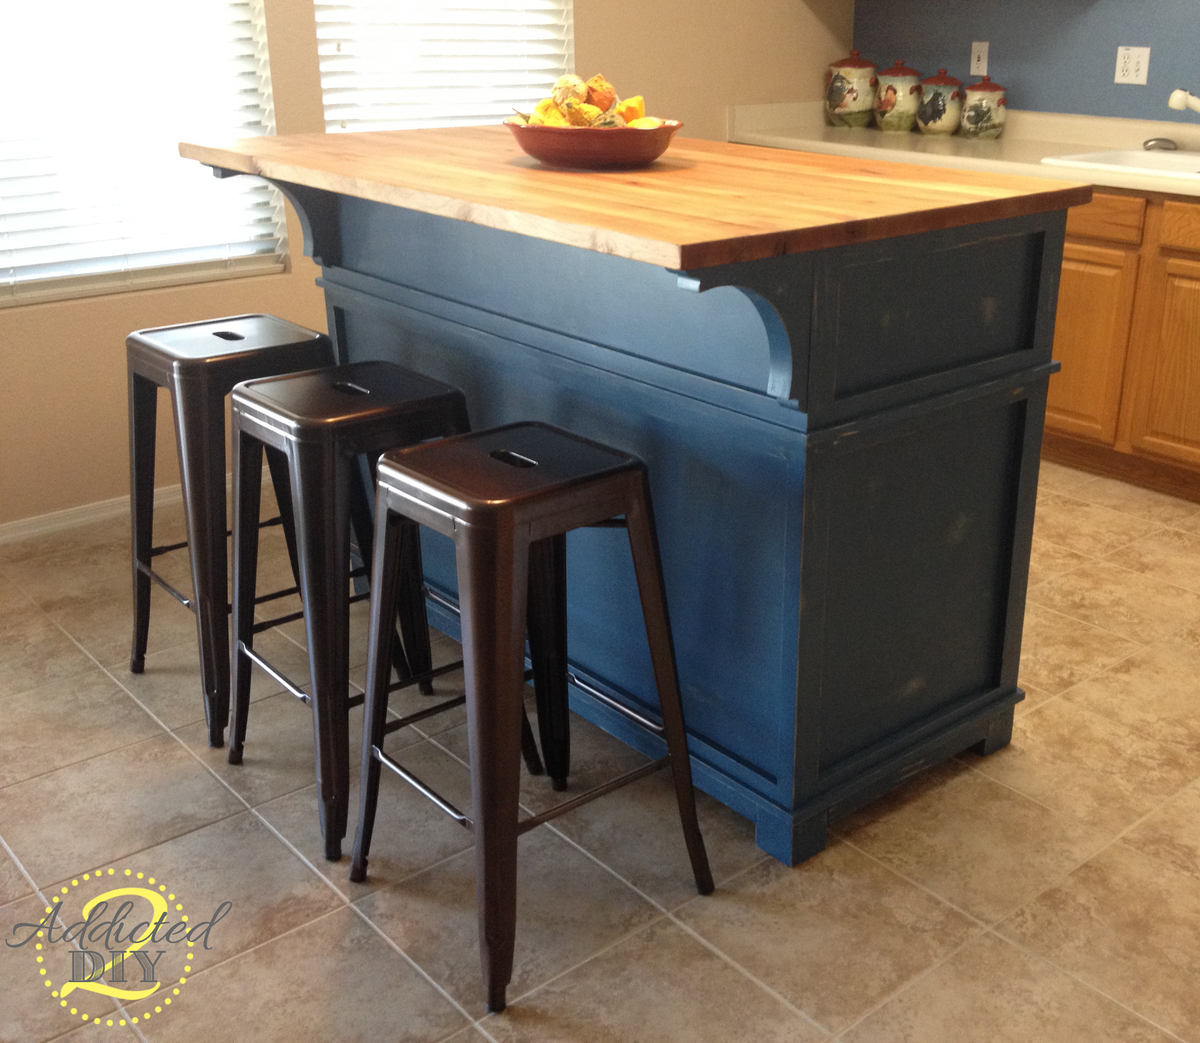 Diy kitchen island design plans - Diy Kitchen Island